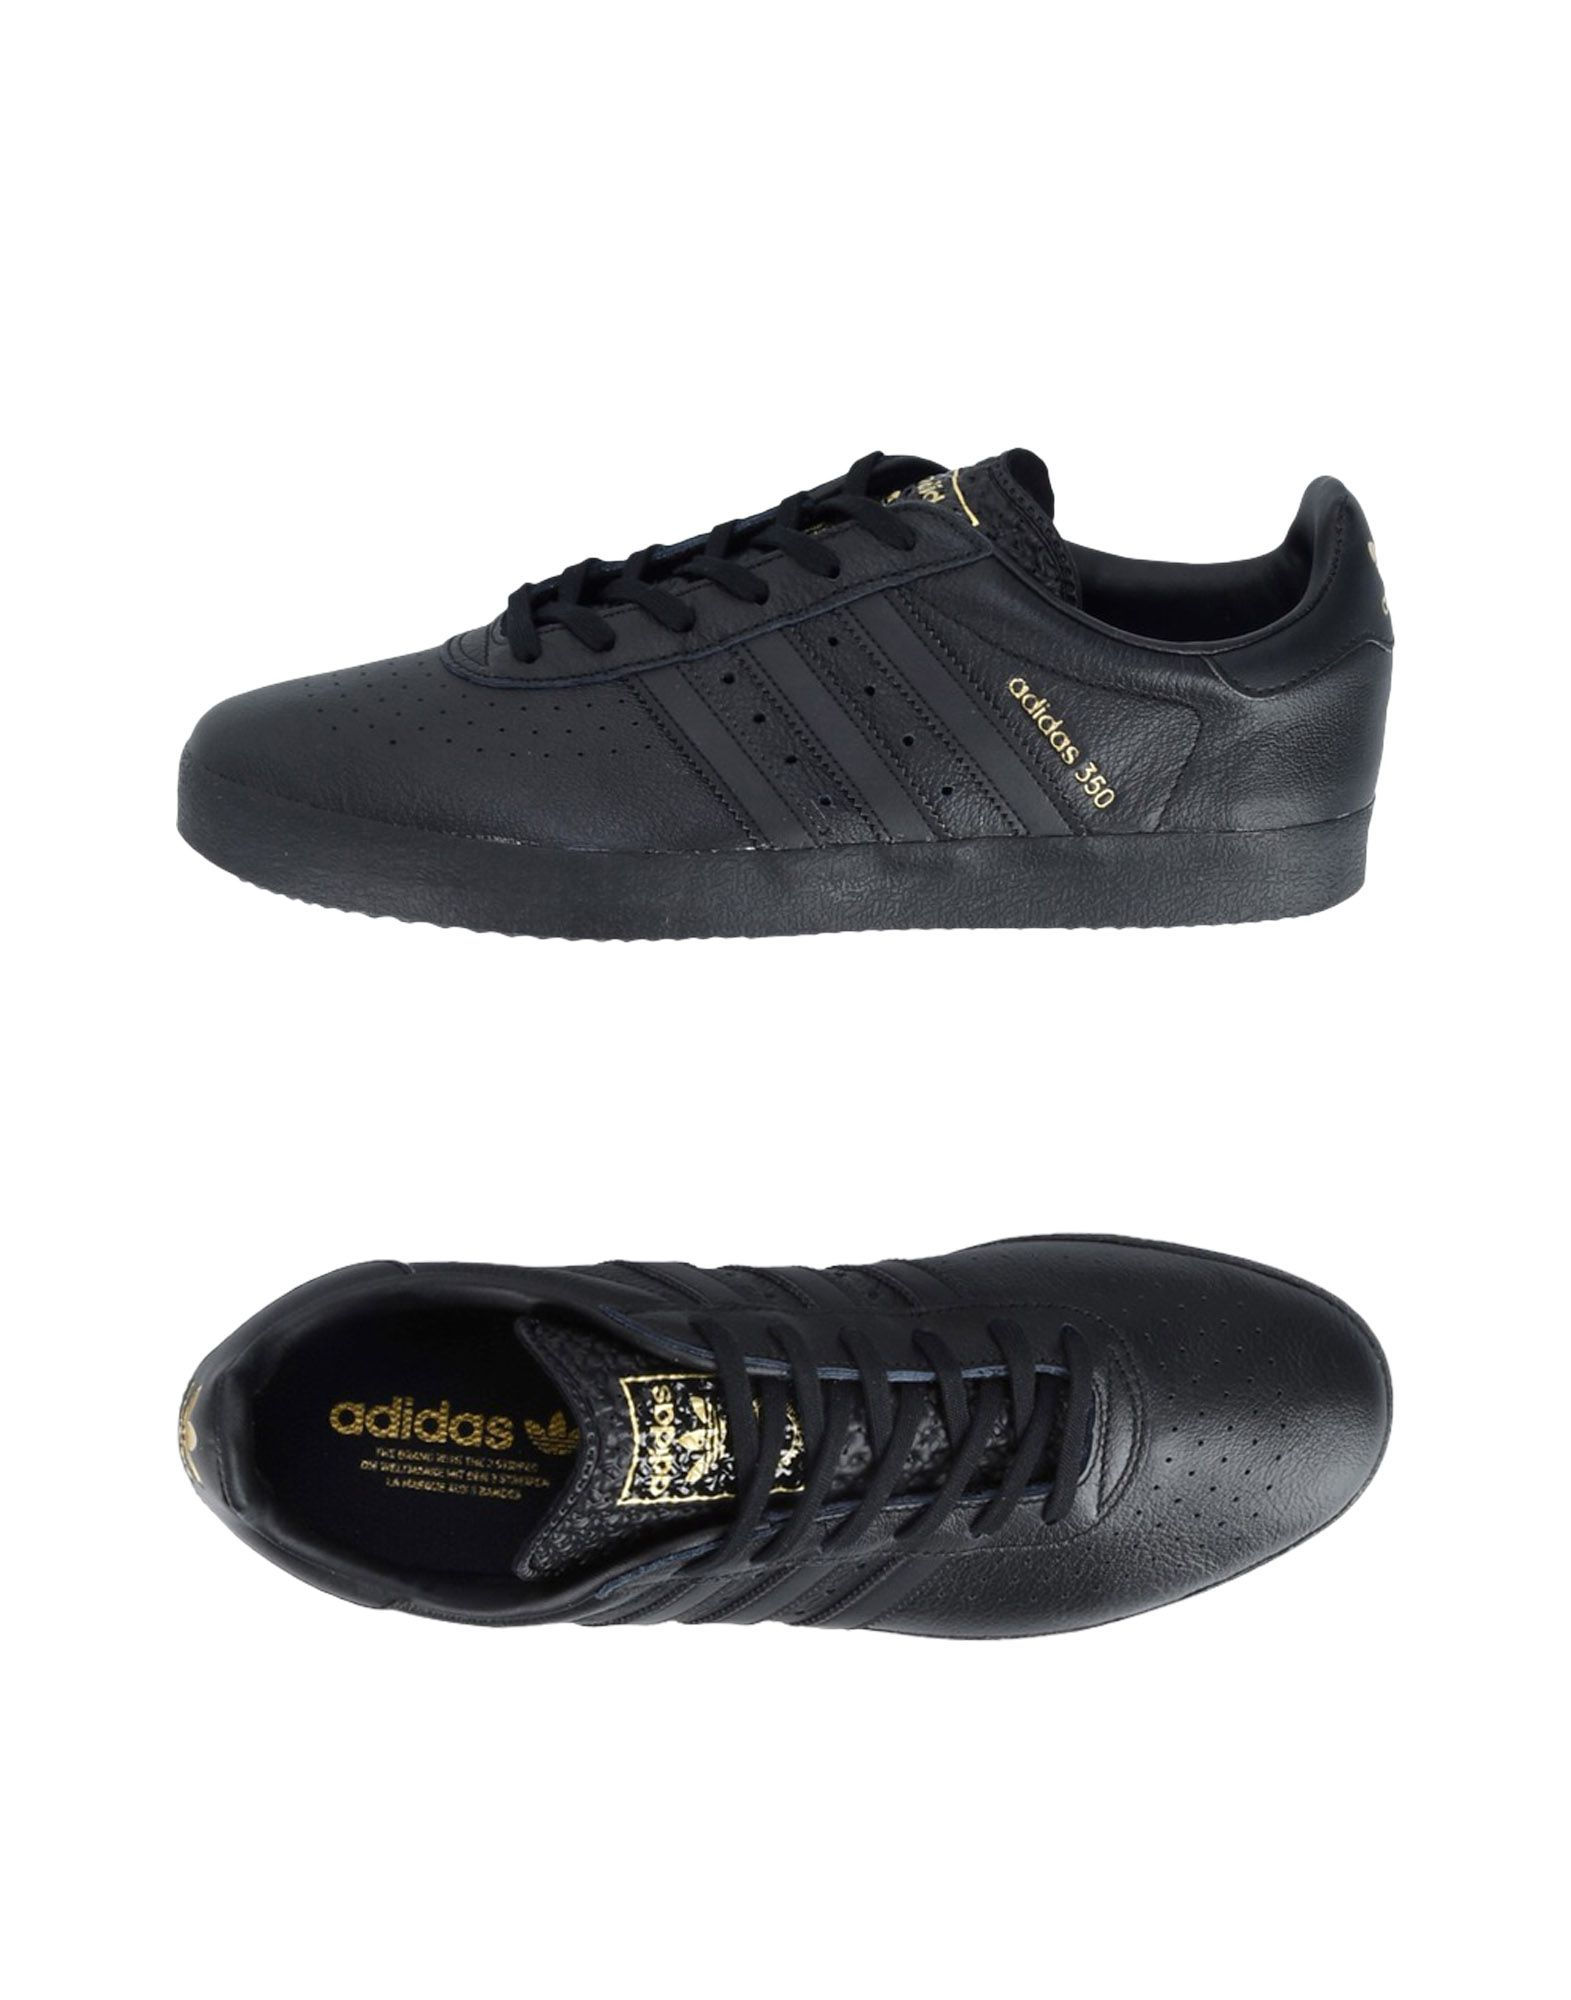 Sneakers Adidas Originals Adidas 350 - Homme - Sneakers Adidas Originals sur